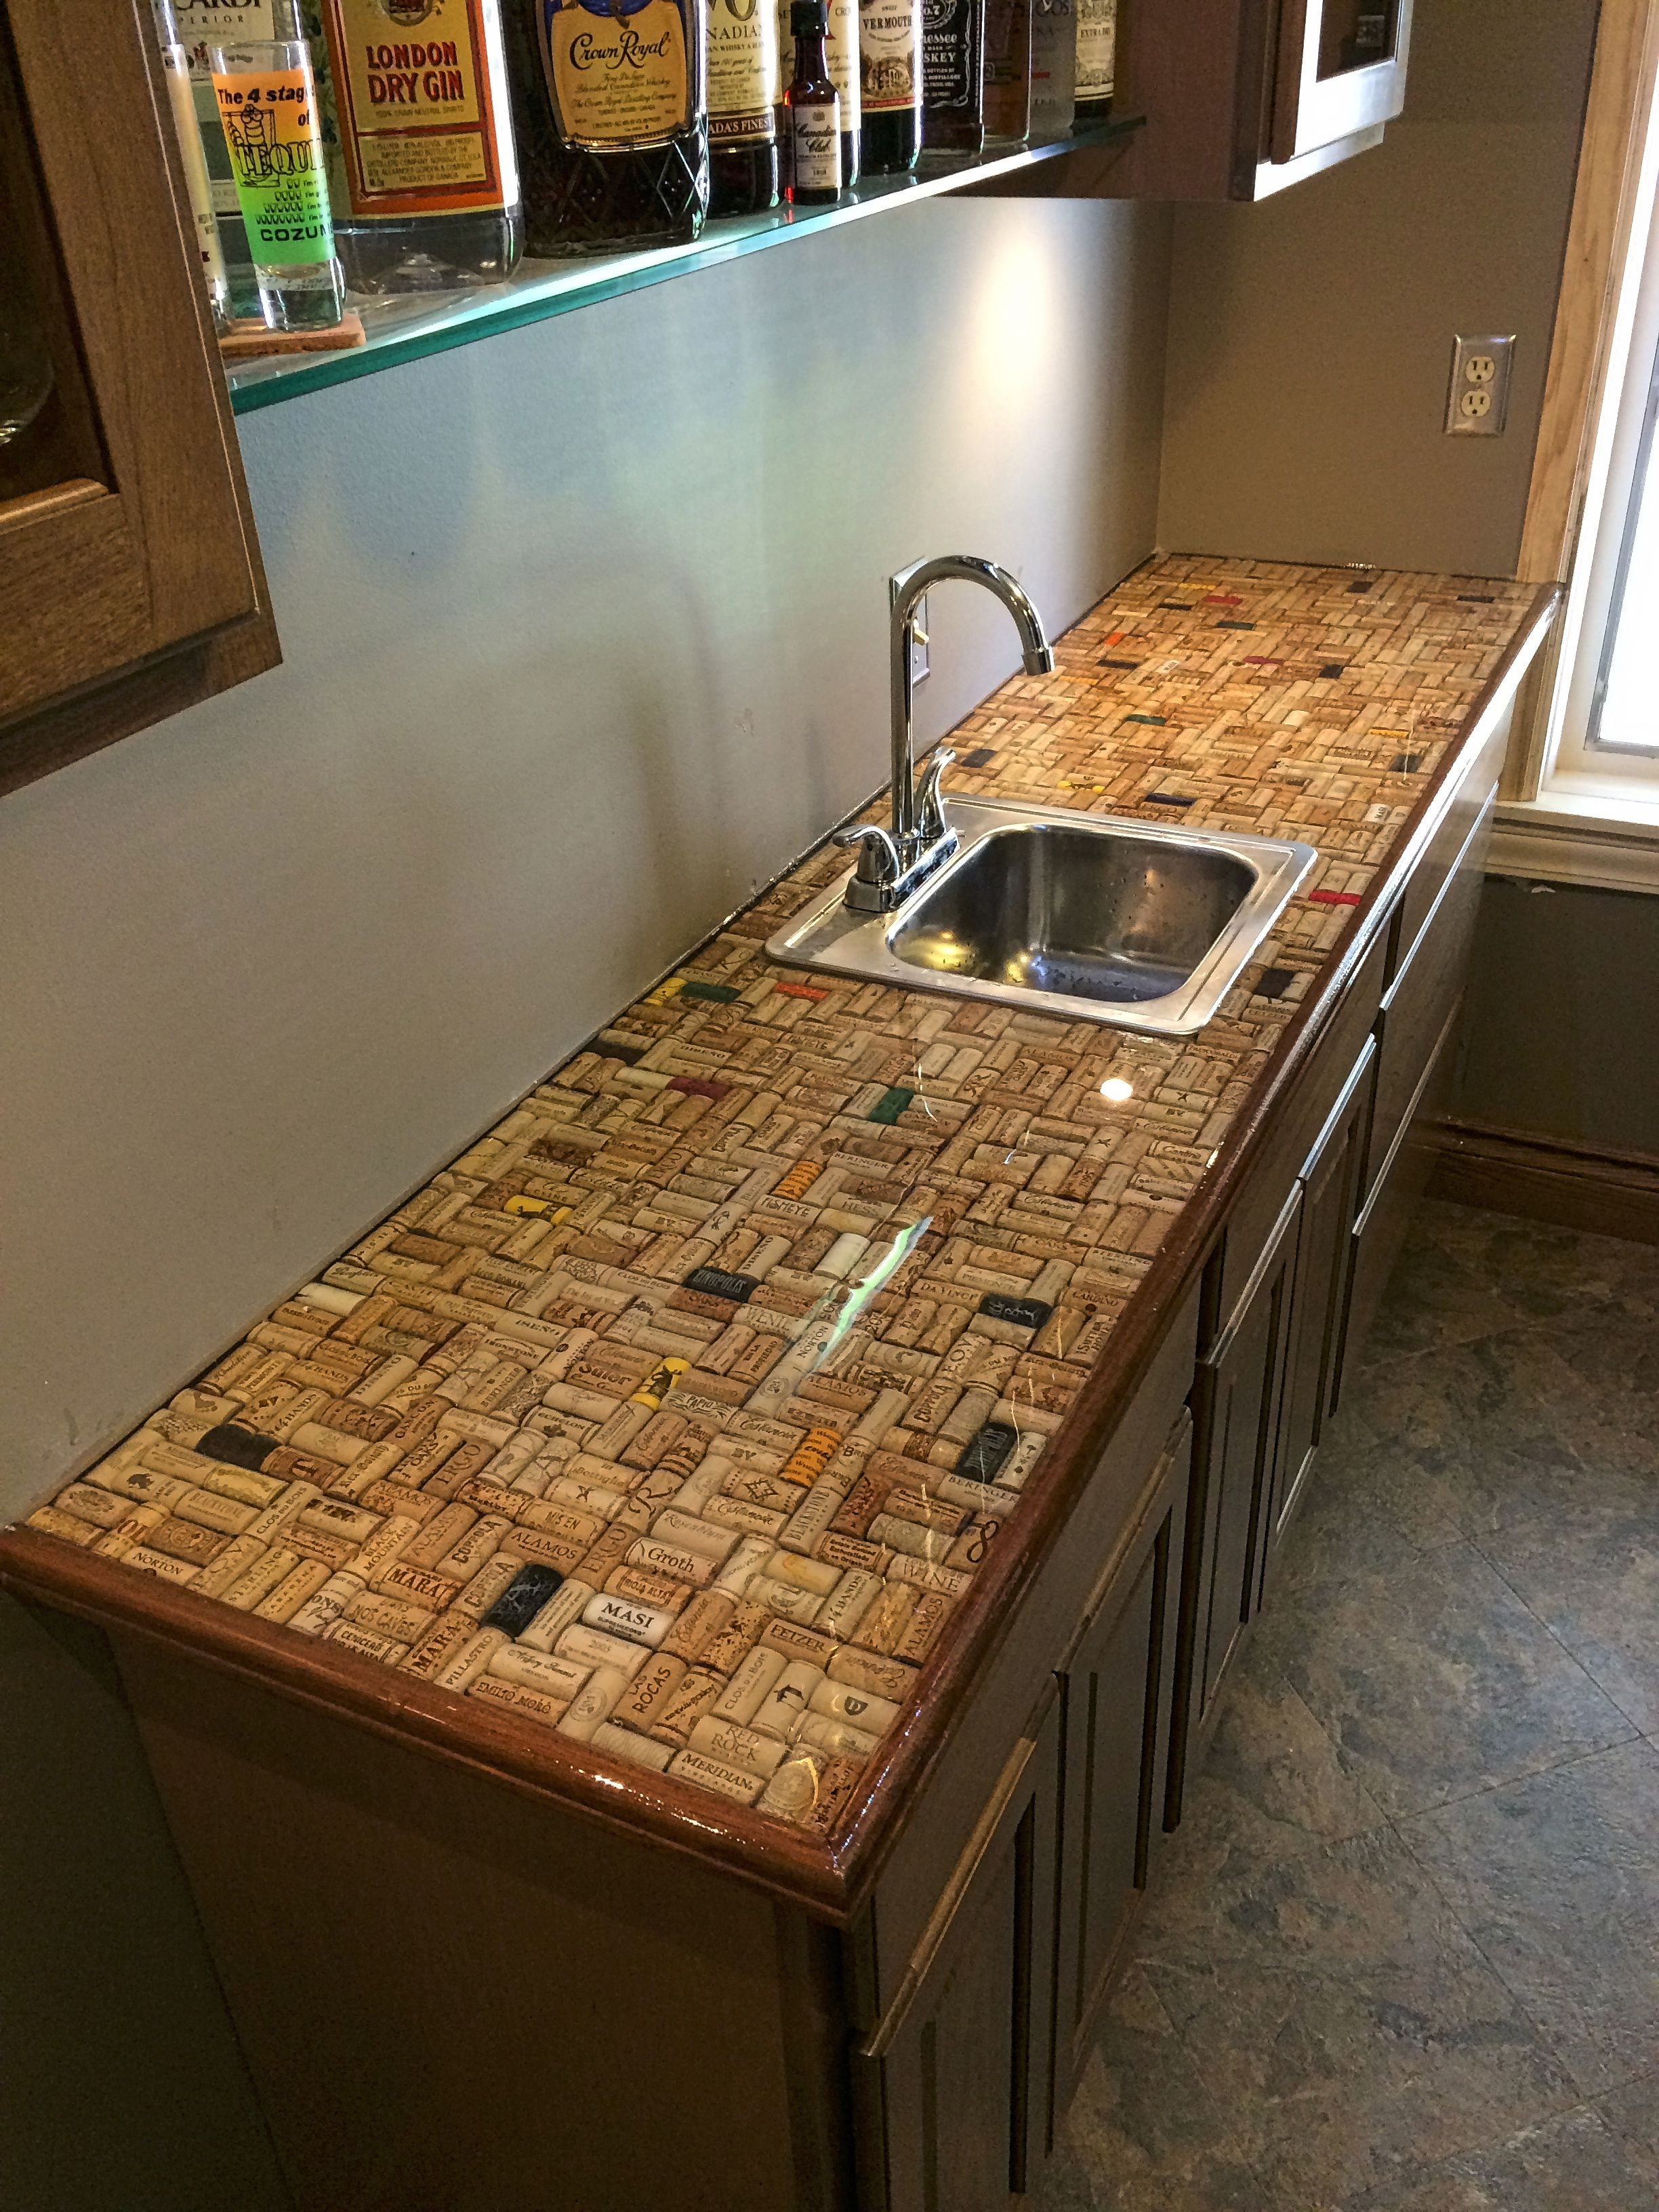 Bartop Epoxy Epoxy Resin Coating Epoxy Bar Tops Pinterest Epoxy Resin And Cork